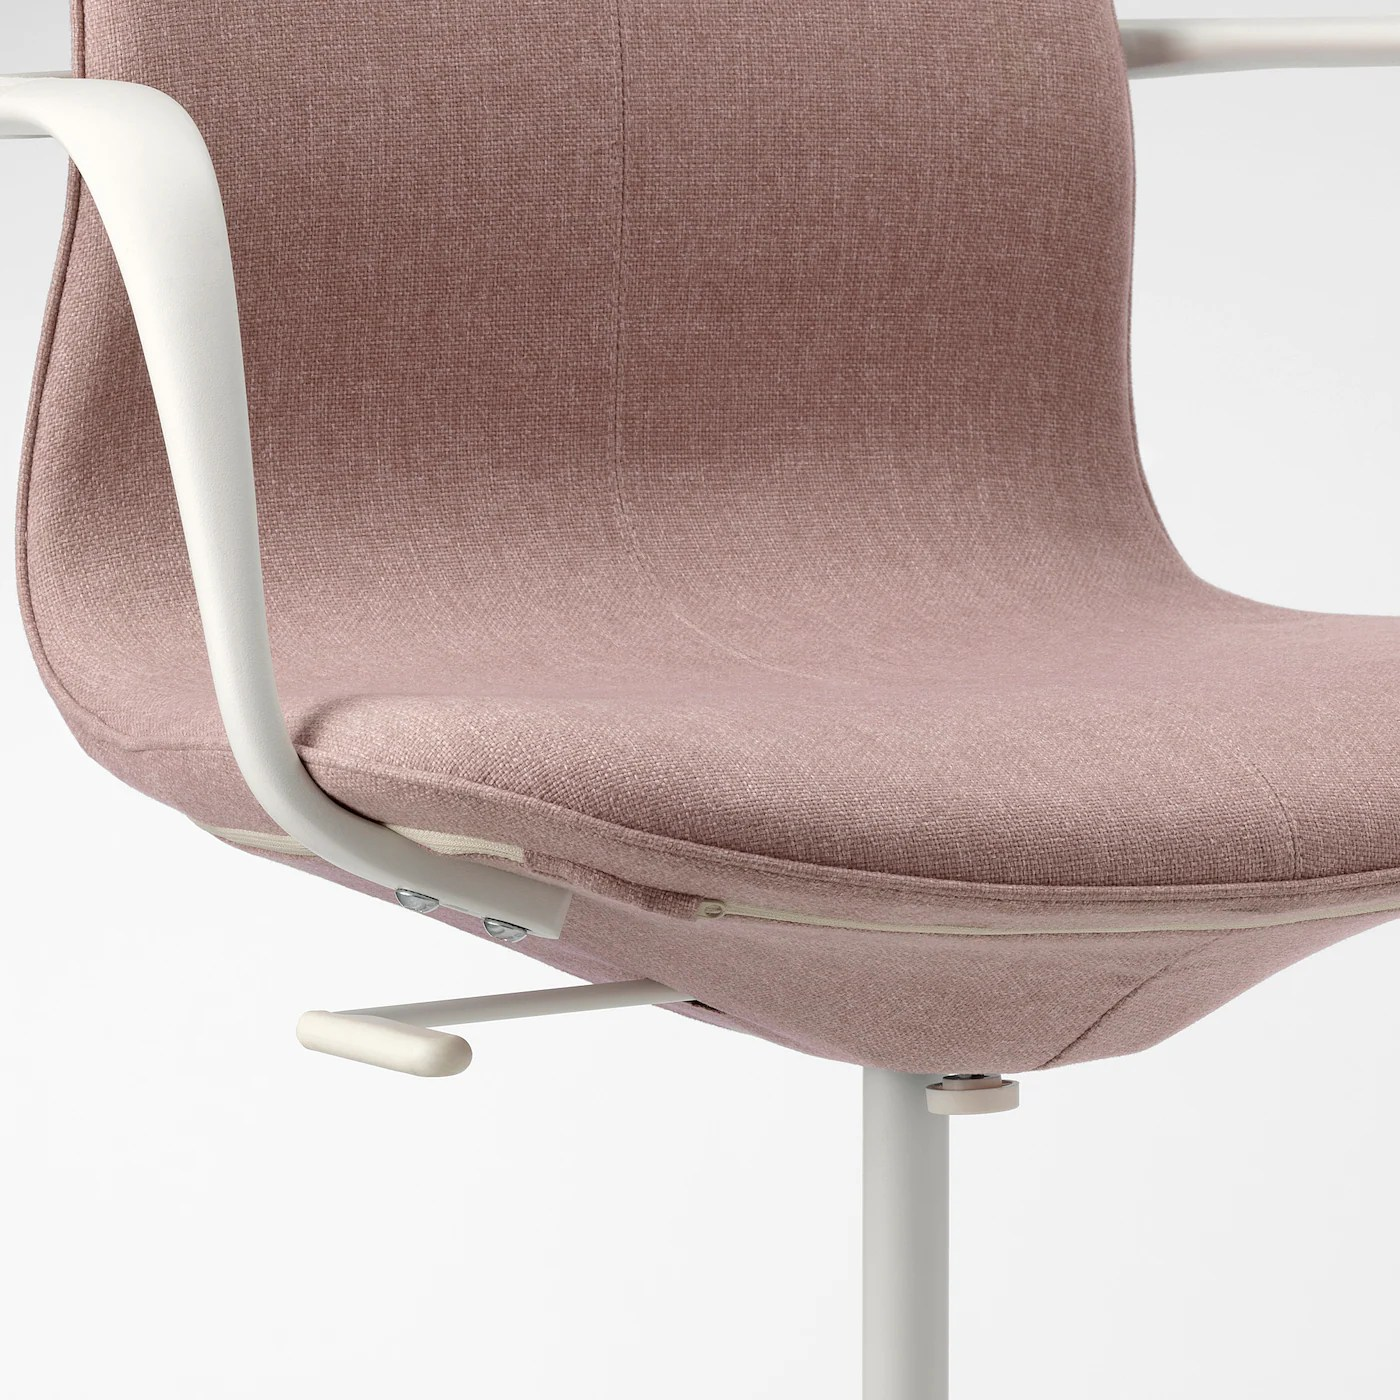 Langfjall Gunnared Light Brown Pink Office Chair With Armrests Tested For 110 Kg Width 68 Cm Ikea